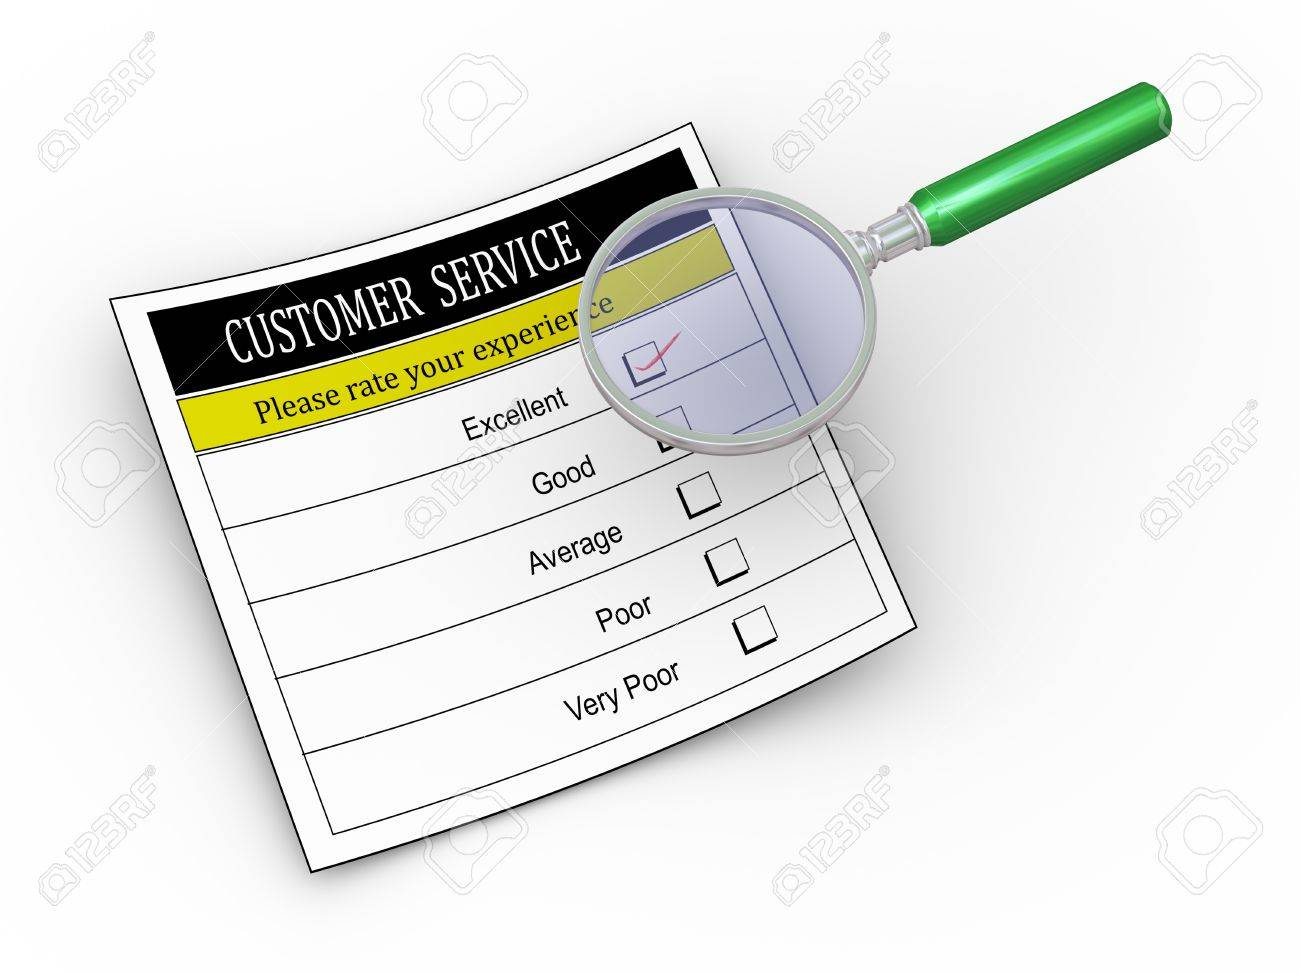 3d illustration of magnifying glass hover over customer service survey form with tick placed in excellent checkbox. Stock Photo - 21752044